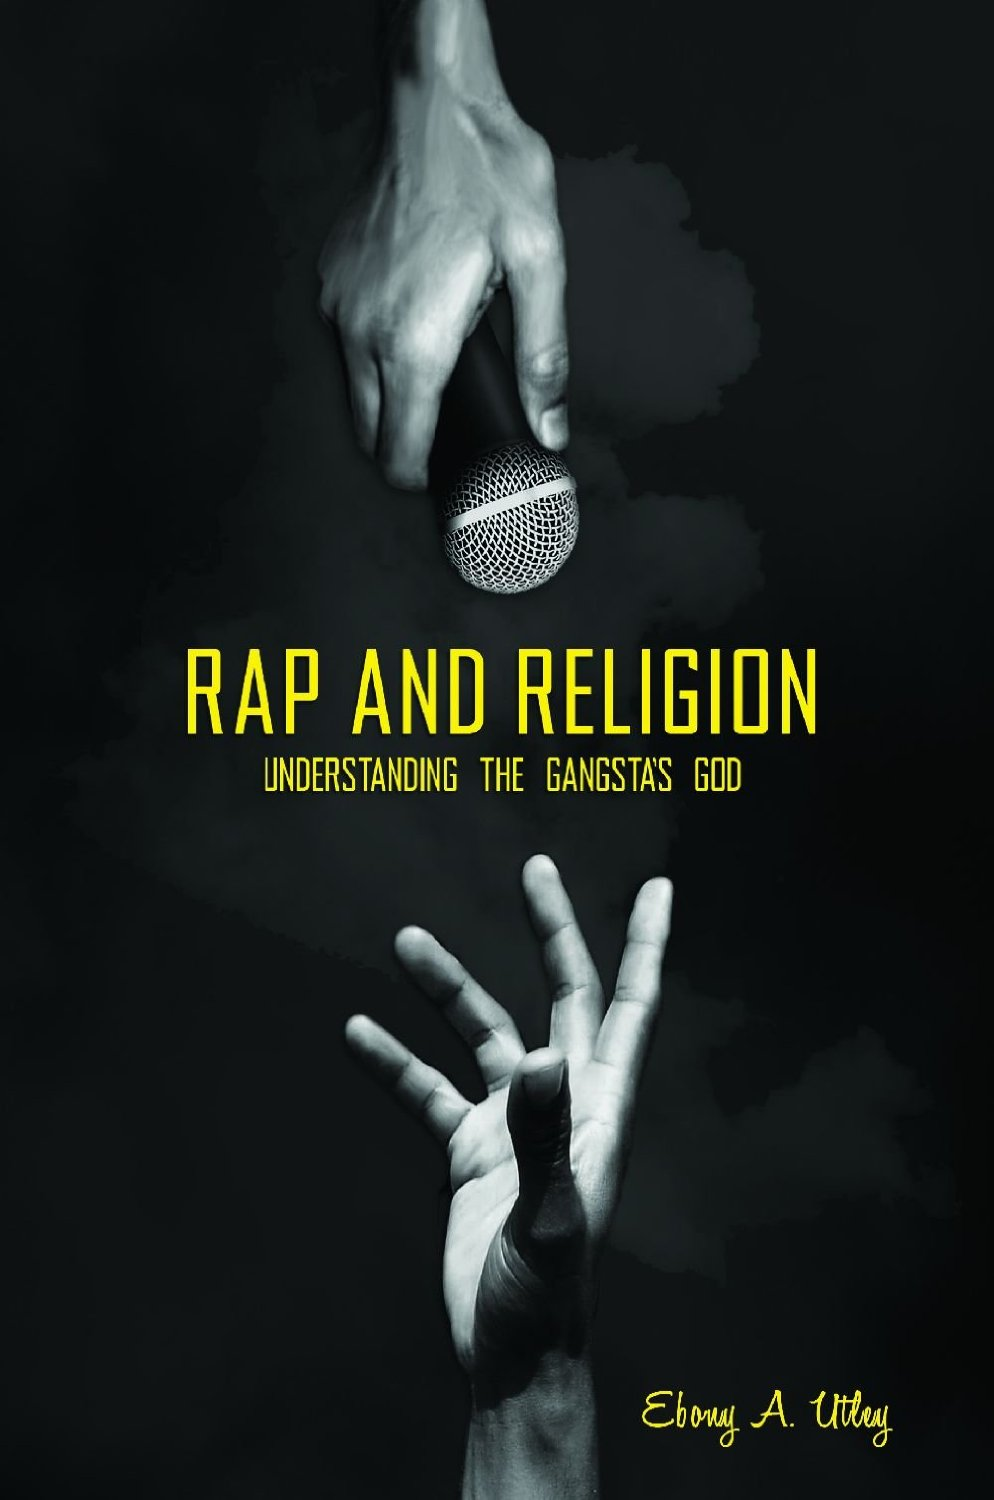 "soulbrotherv2: Rap and Religion: Understanding the Gangsta's God by Ebony A. Utley Why is the battle between good and evil a recurring theme in rap lyrics? What role does the devil play in hip hop? What exactly does it mean when rappers wear a diamond-encrusted ""Jesus"" around their necks? Why do rappers acknowledge God during award shows and frequently include prayers in their albums? Rap and Religion: Understanding the Gangsta's God tackles a sensitive and controversial topic: the juxtaposition—and seeming hypocrisy—of references to God within hip hop culture and rap music. This book provides a focused examination of the intersection of God and religion with hip hop and rap music. Author Ebony A. Utley, PhD, references selected rap lyrics and videos that span three decades of mainstream hip hop culture in America, representing the East Coast, the West Coast, and the South in order to account for how and why rappers talk about God. Utley also describes the complex urban environments that birthed rap music and sources interviews, award acceptance speeches, magazine and website content, and liner notes to further explain how God became entrenched in hip hop. [book link]"